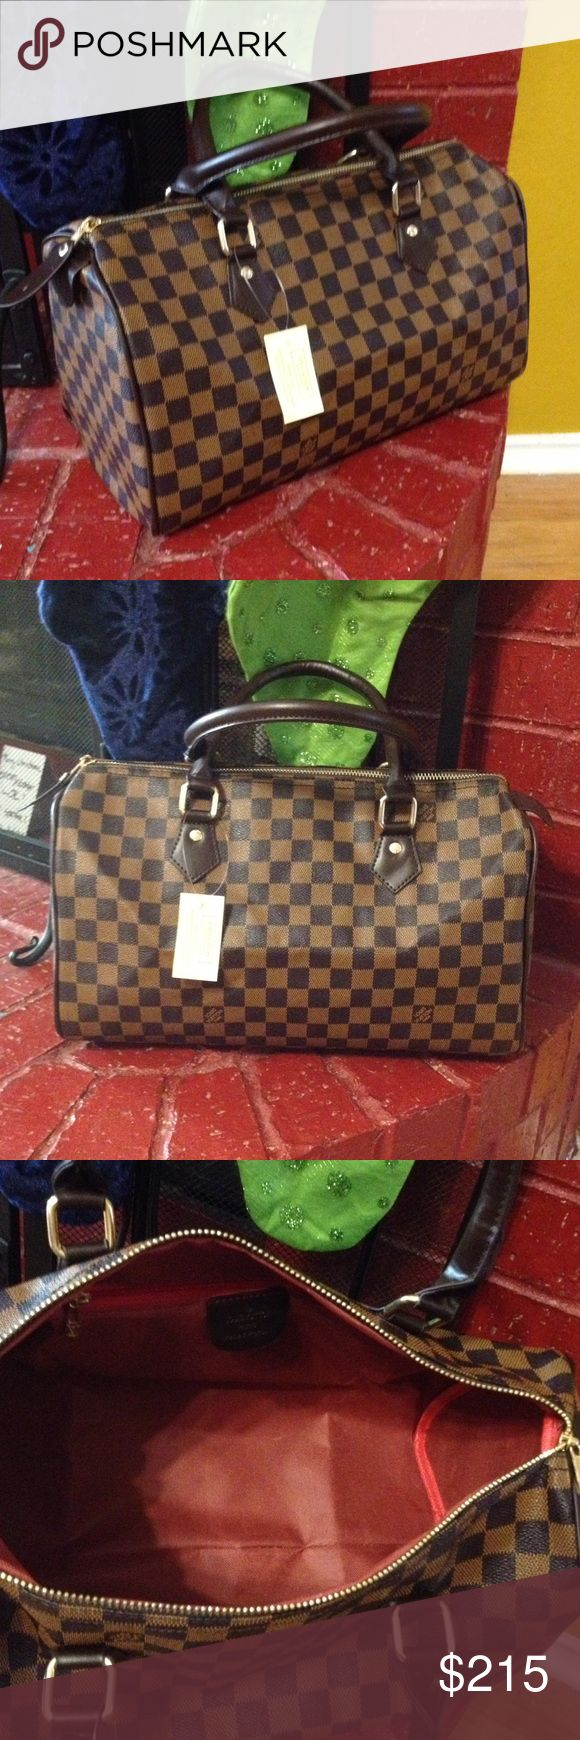 Speedy35 satchel handbag Size is large and it's so beautiful bag. Price reflect auth. Send me offer!! Will ship it today a well. Don't miss it. Cute bag Louis Vuitton Bags Satchels